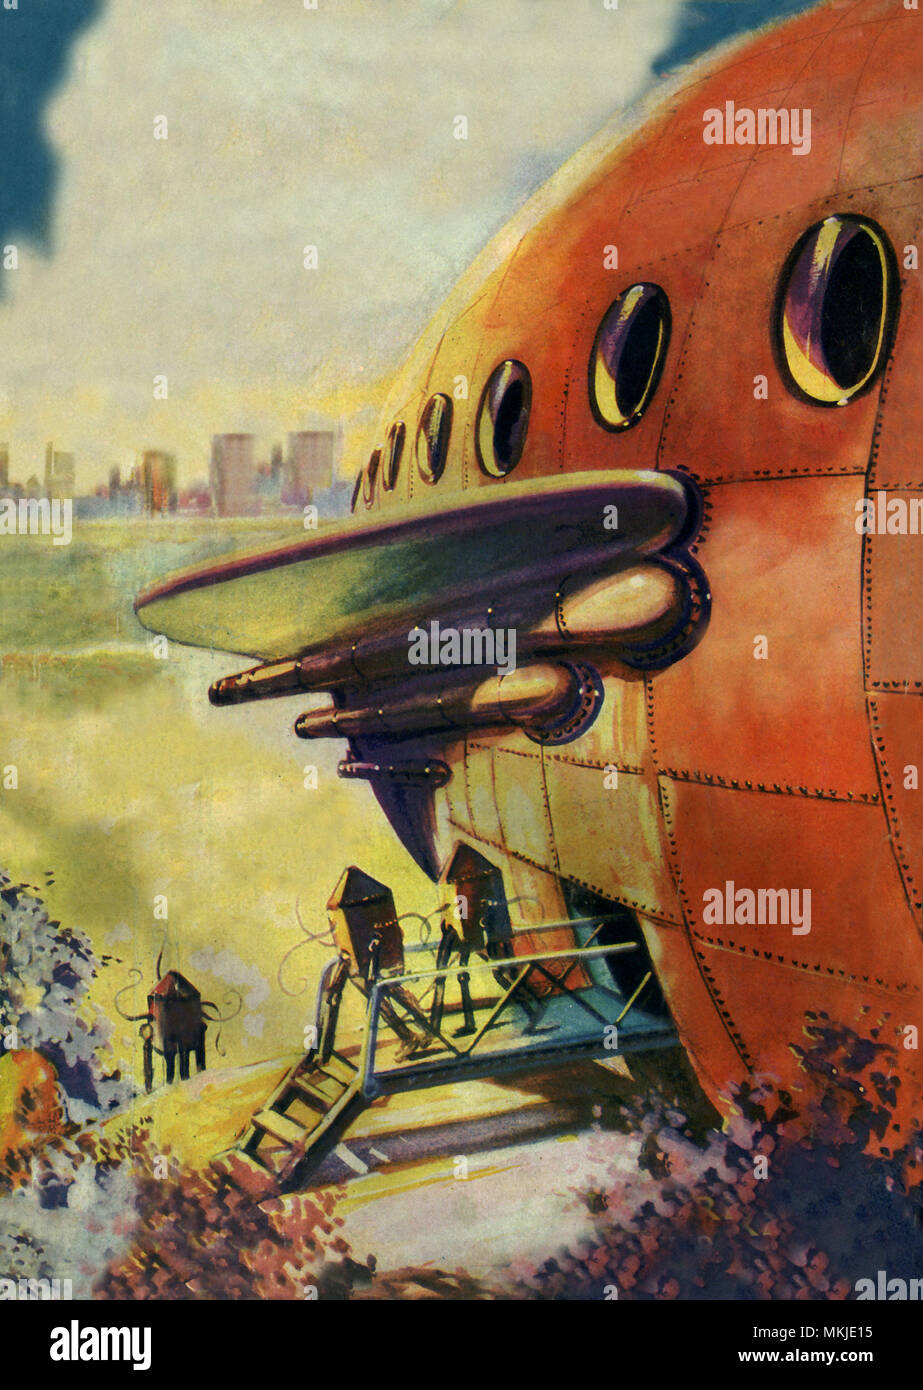 Sci Fi - Alien Invaders Stock Photo